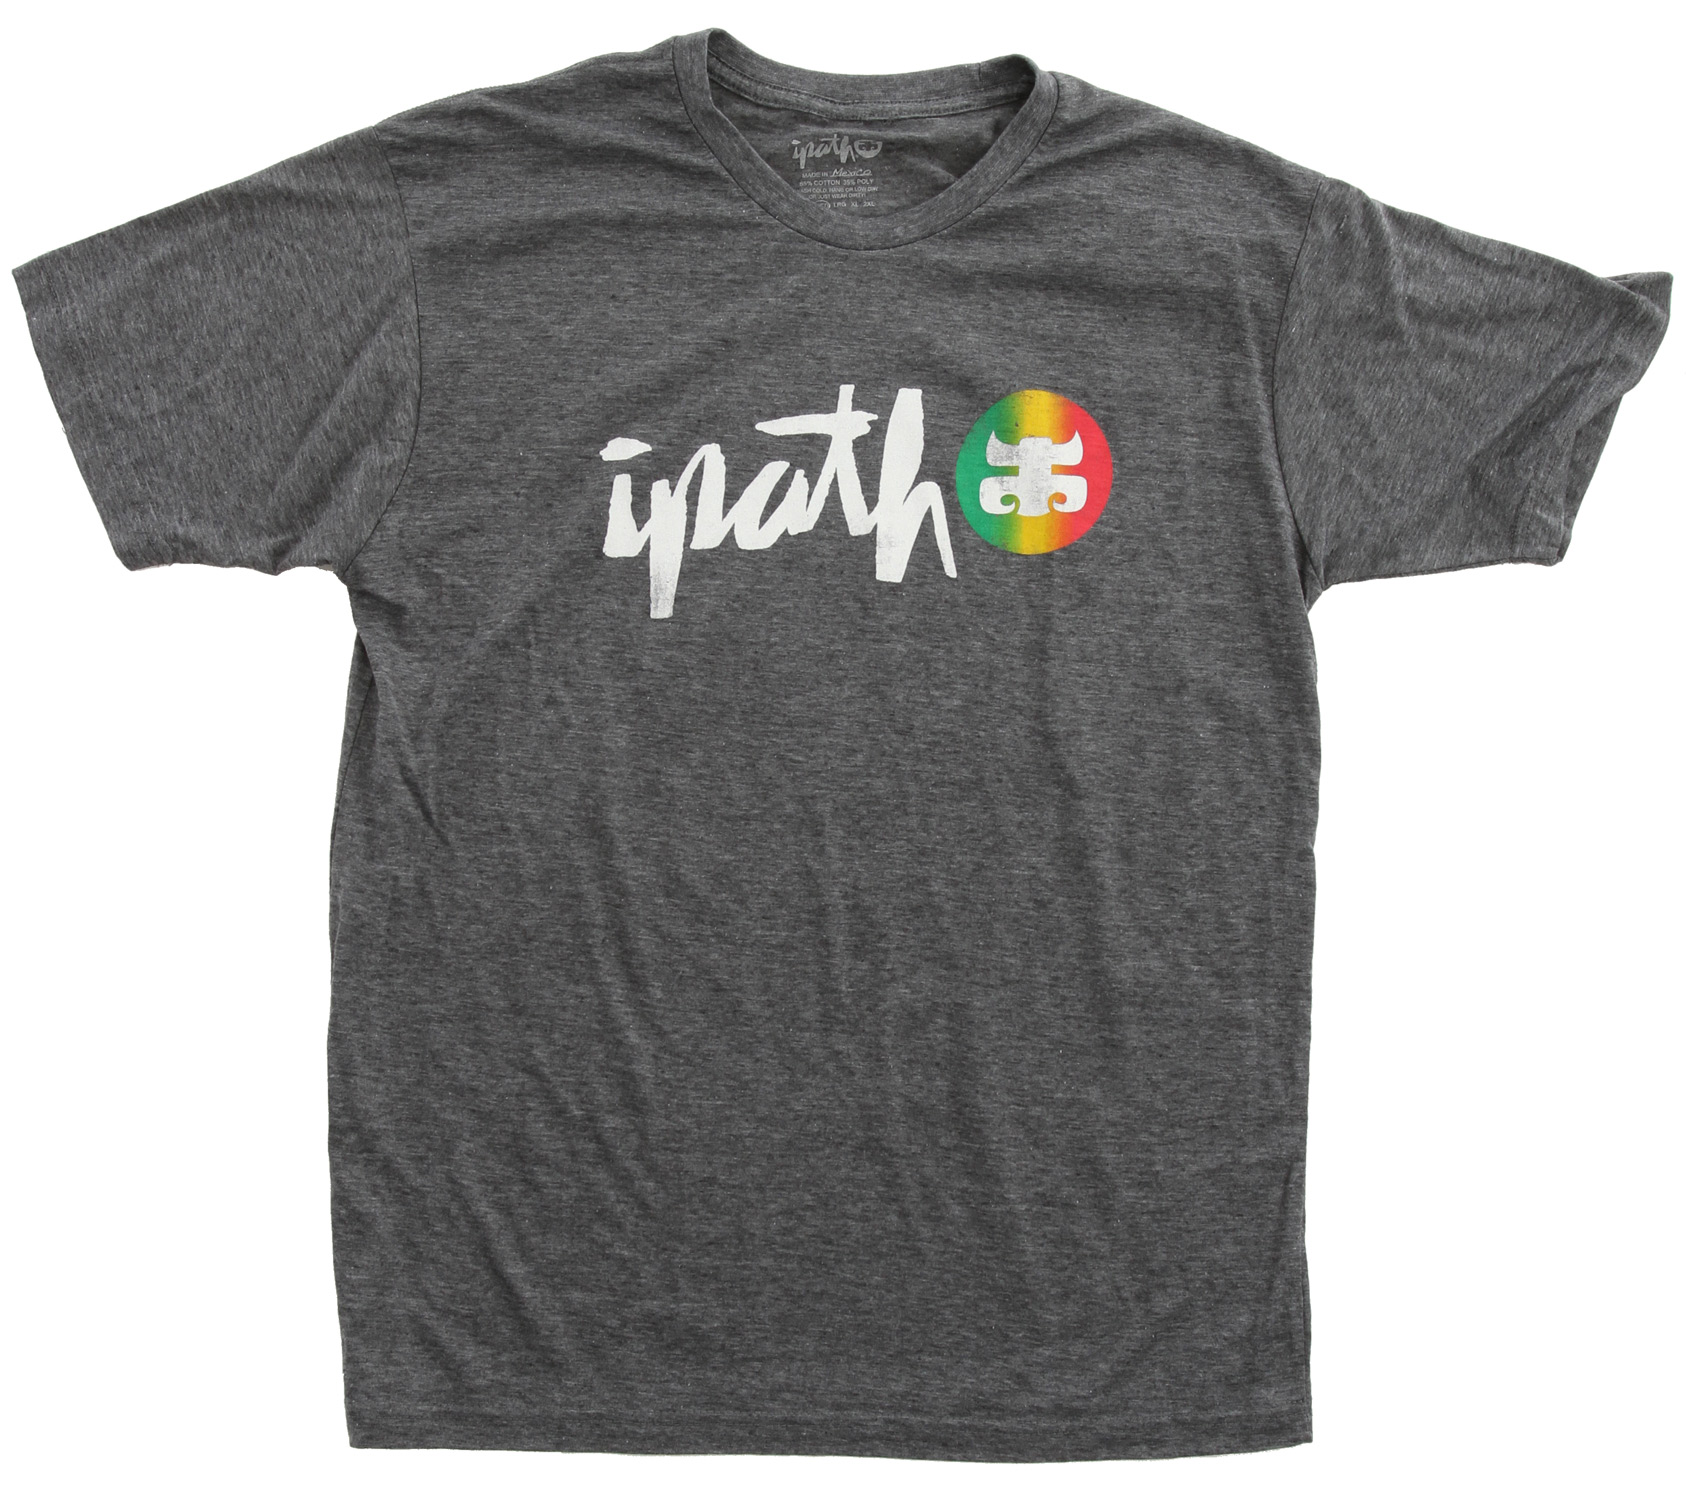 Key Features of the Ipath Wash T-Shirt: 60/40 cotton polyester tri blend tee Font chest print - $13.95